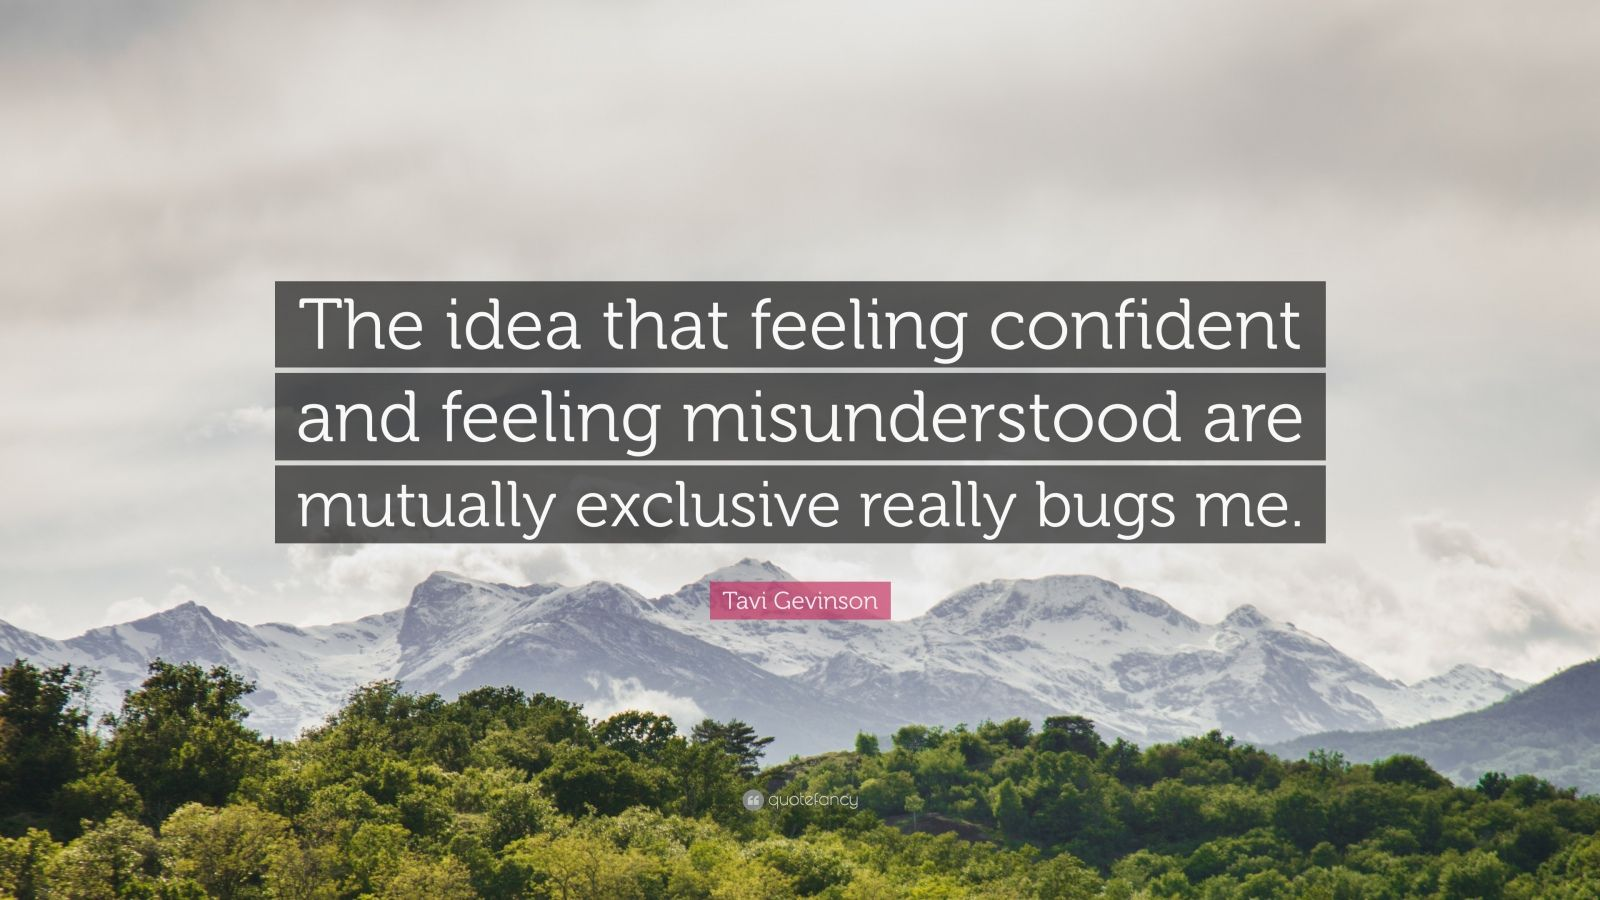 """Tavi Gevinson Quote: """"The idea that feeling confident and feeling misunderstood are mutually exclusive really bugs me."""""""